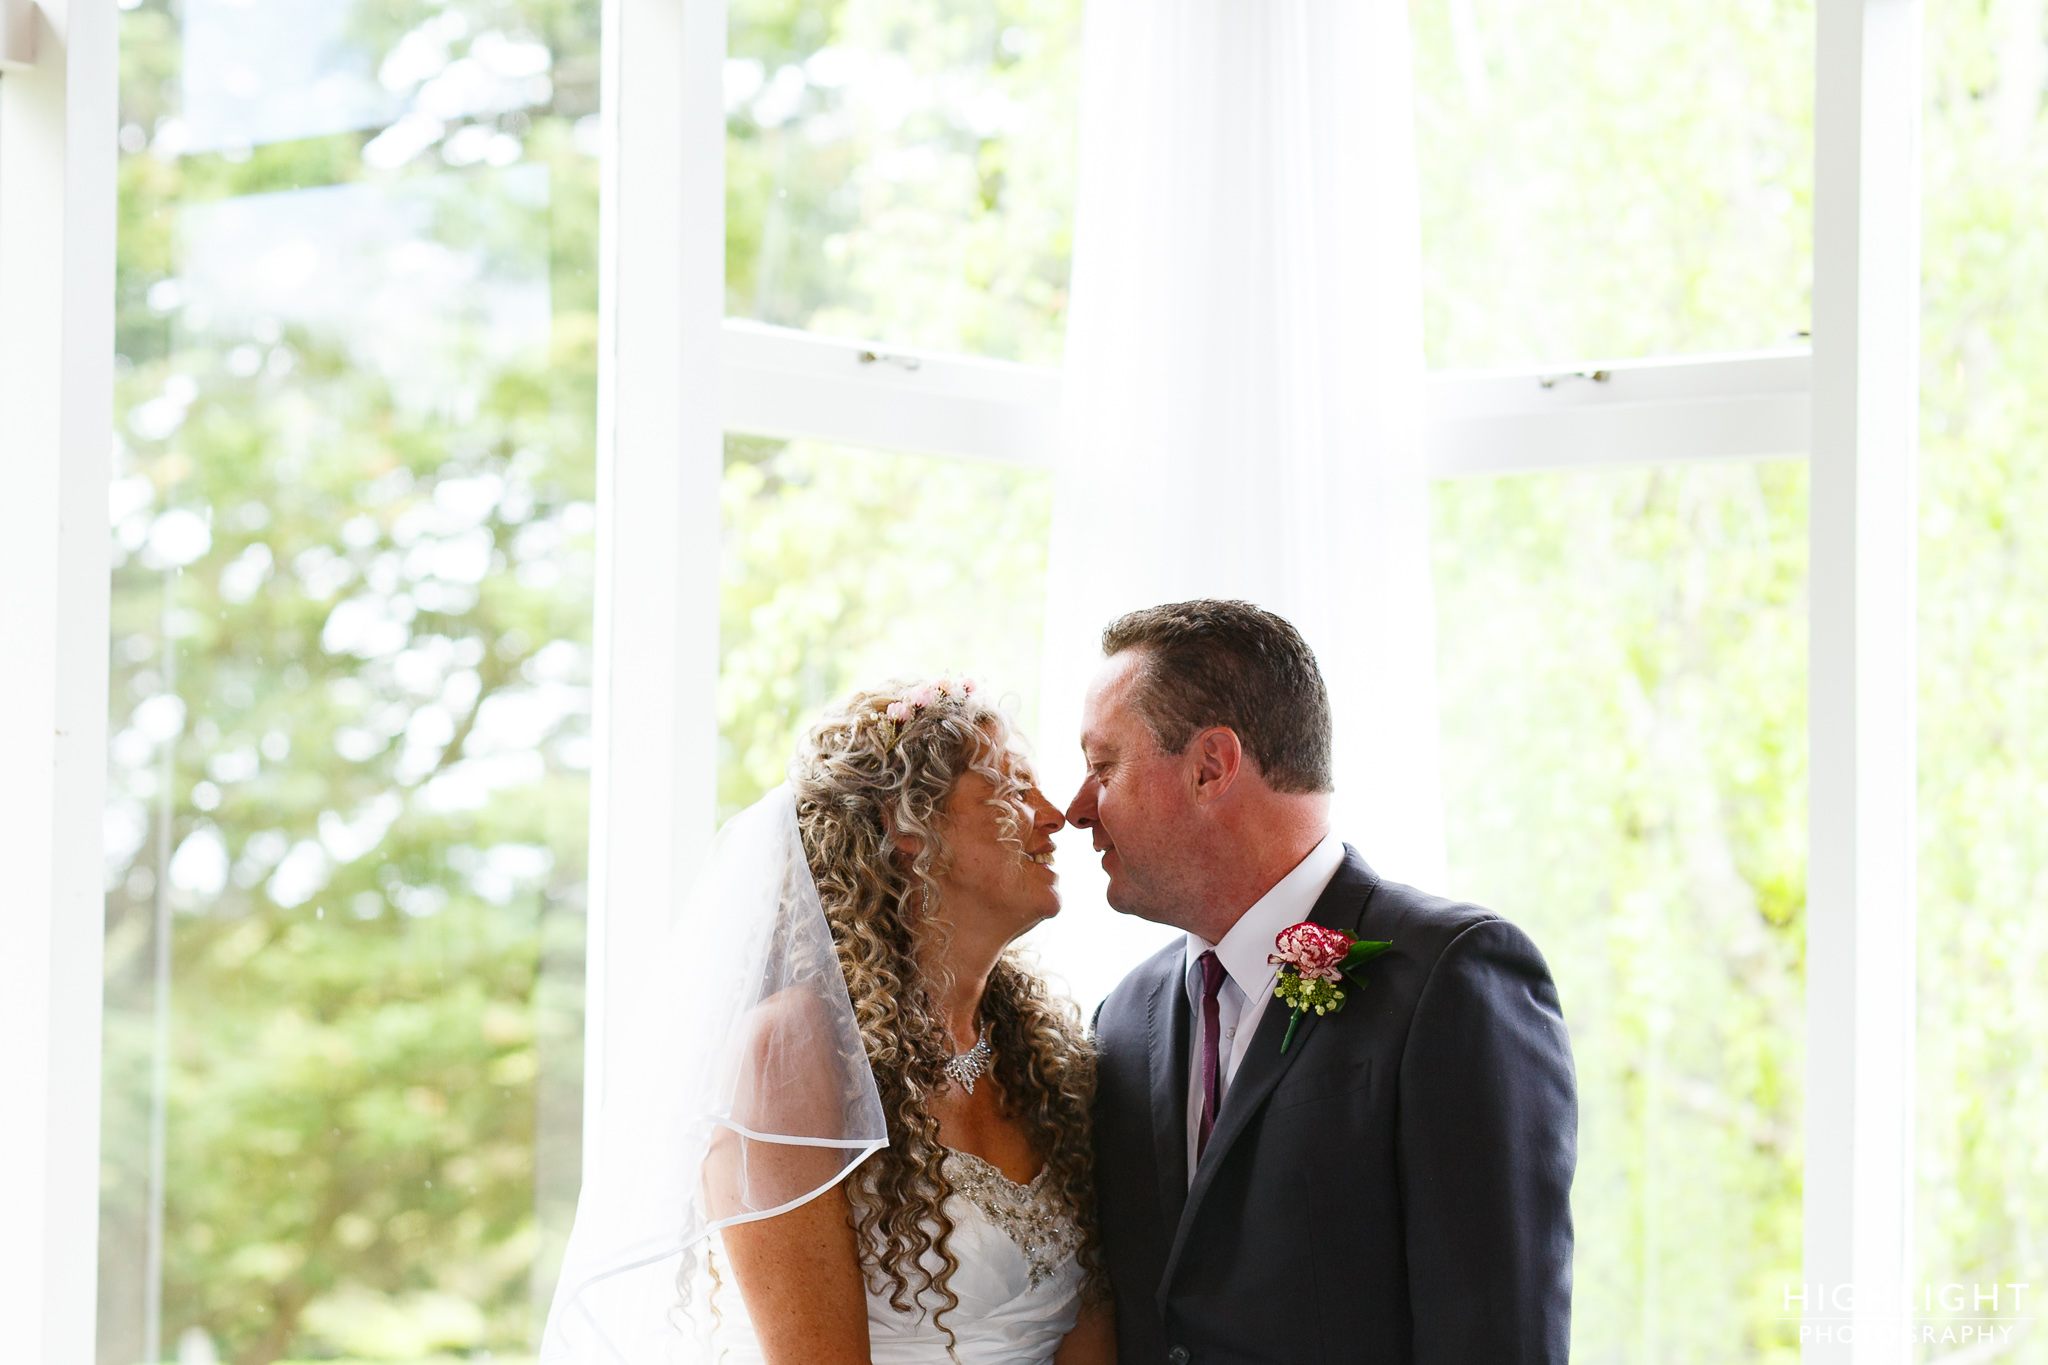 highlight_wedding_photography_palmerston_north_manawatu_chalet_wedding-51.jpg